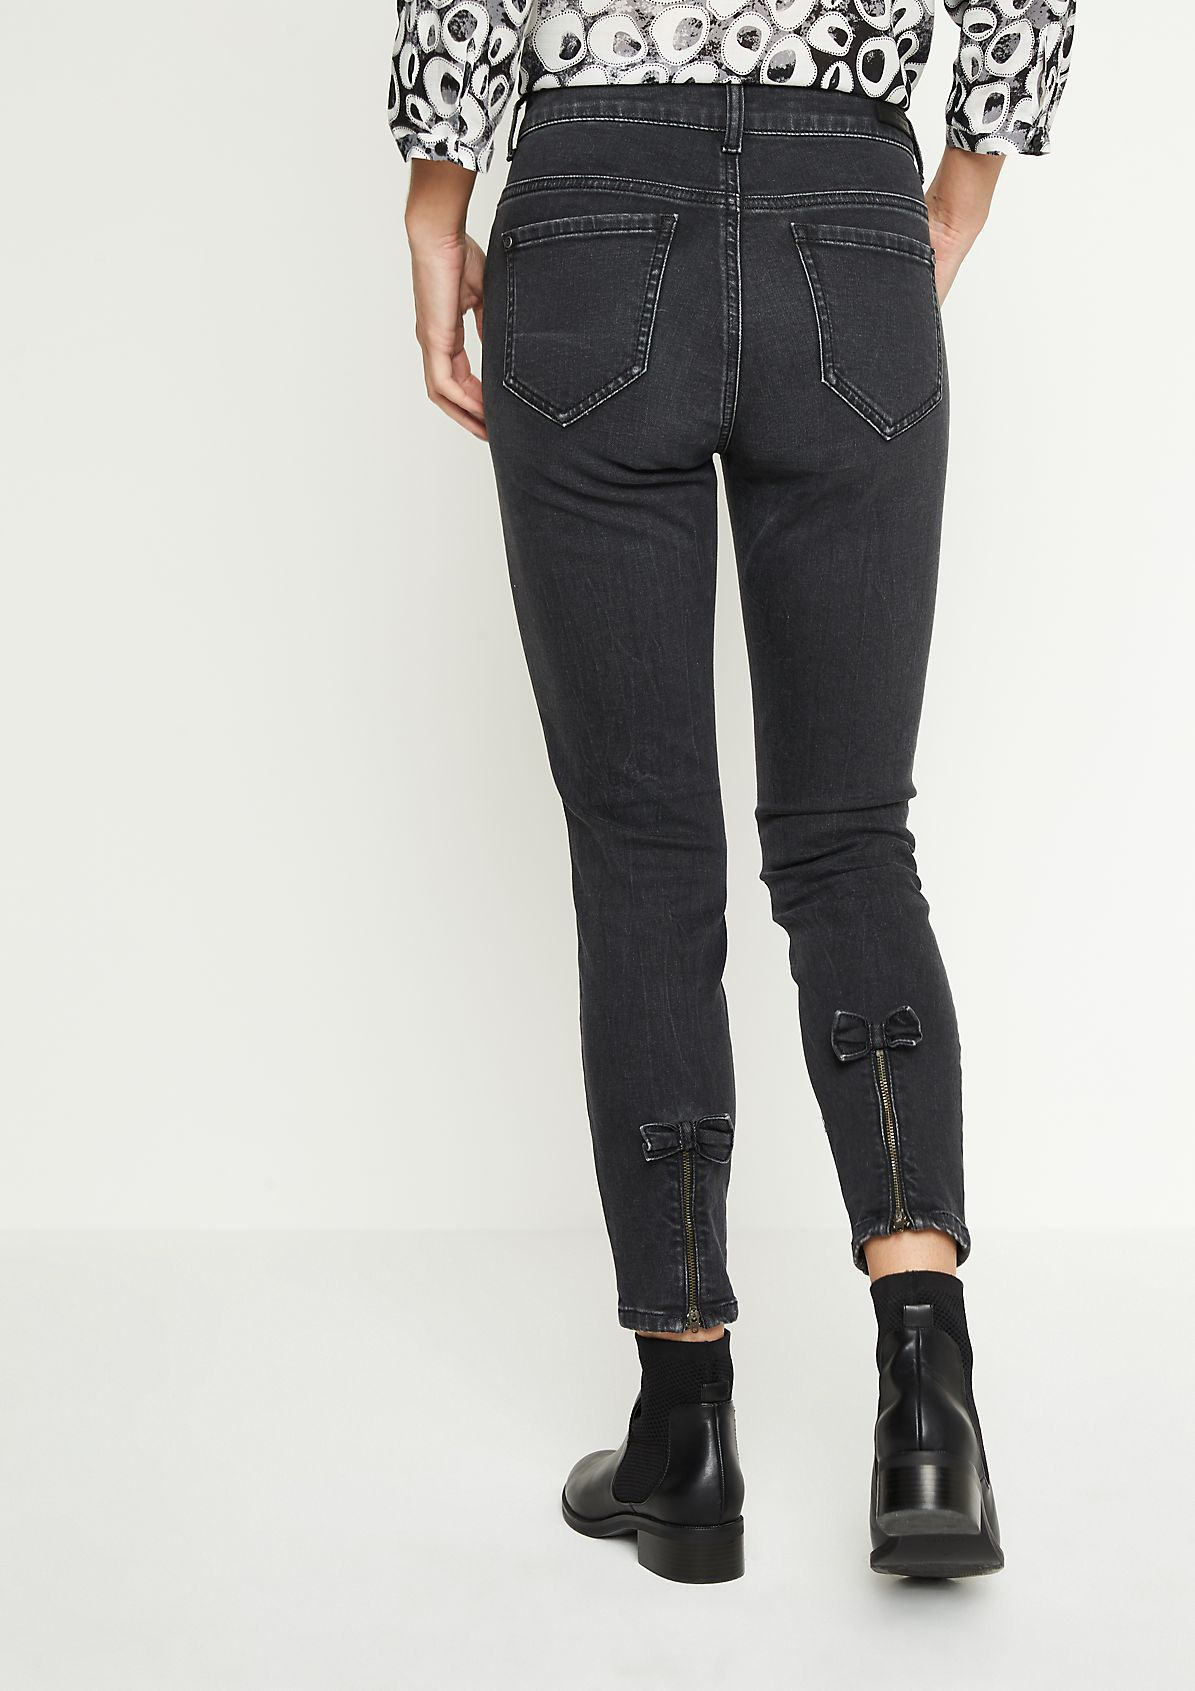 Black Denim-Jeans in Used-Optik